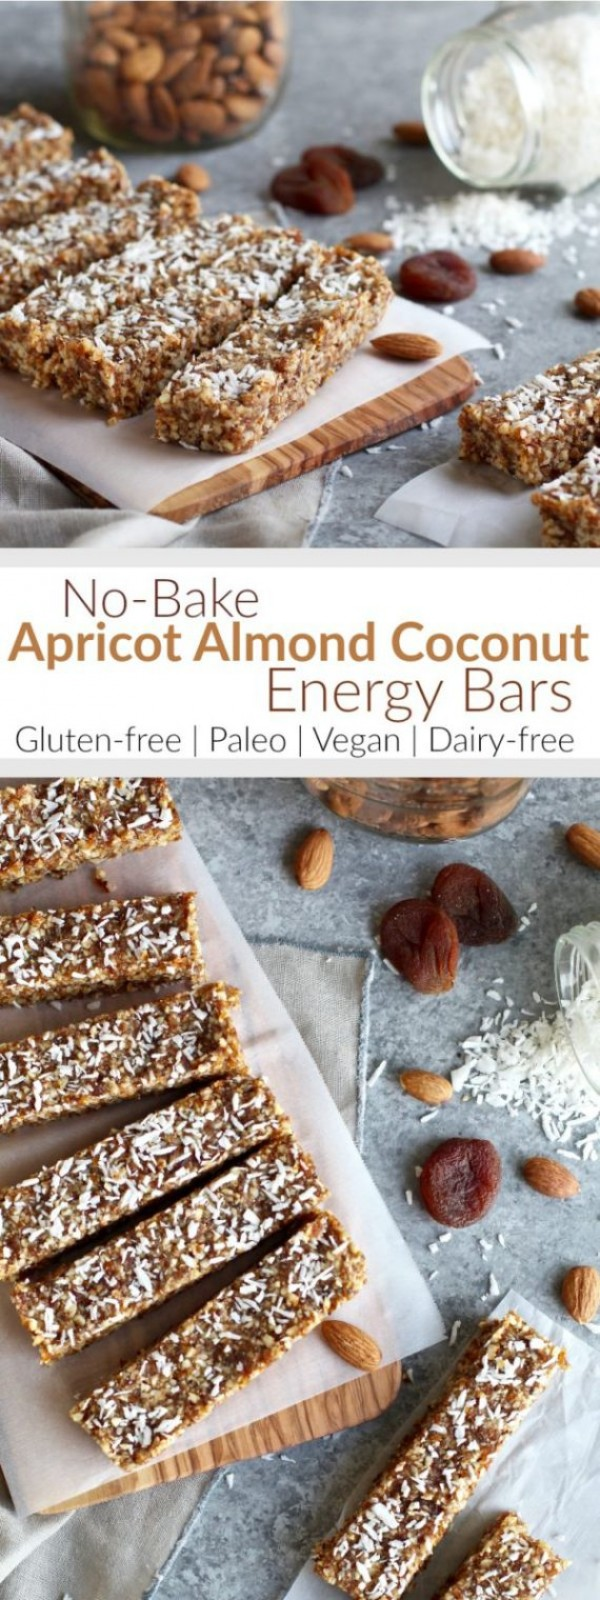 Get the recipe Apricot Almond Coconut Energy Bars @recipes_to_go